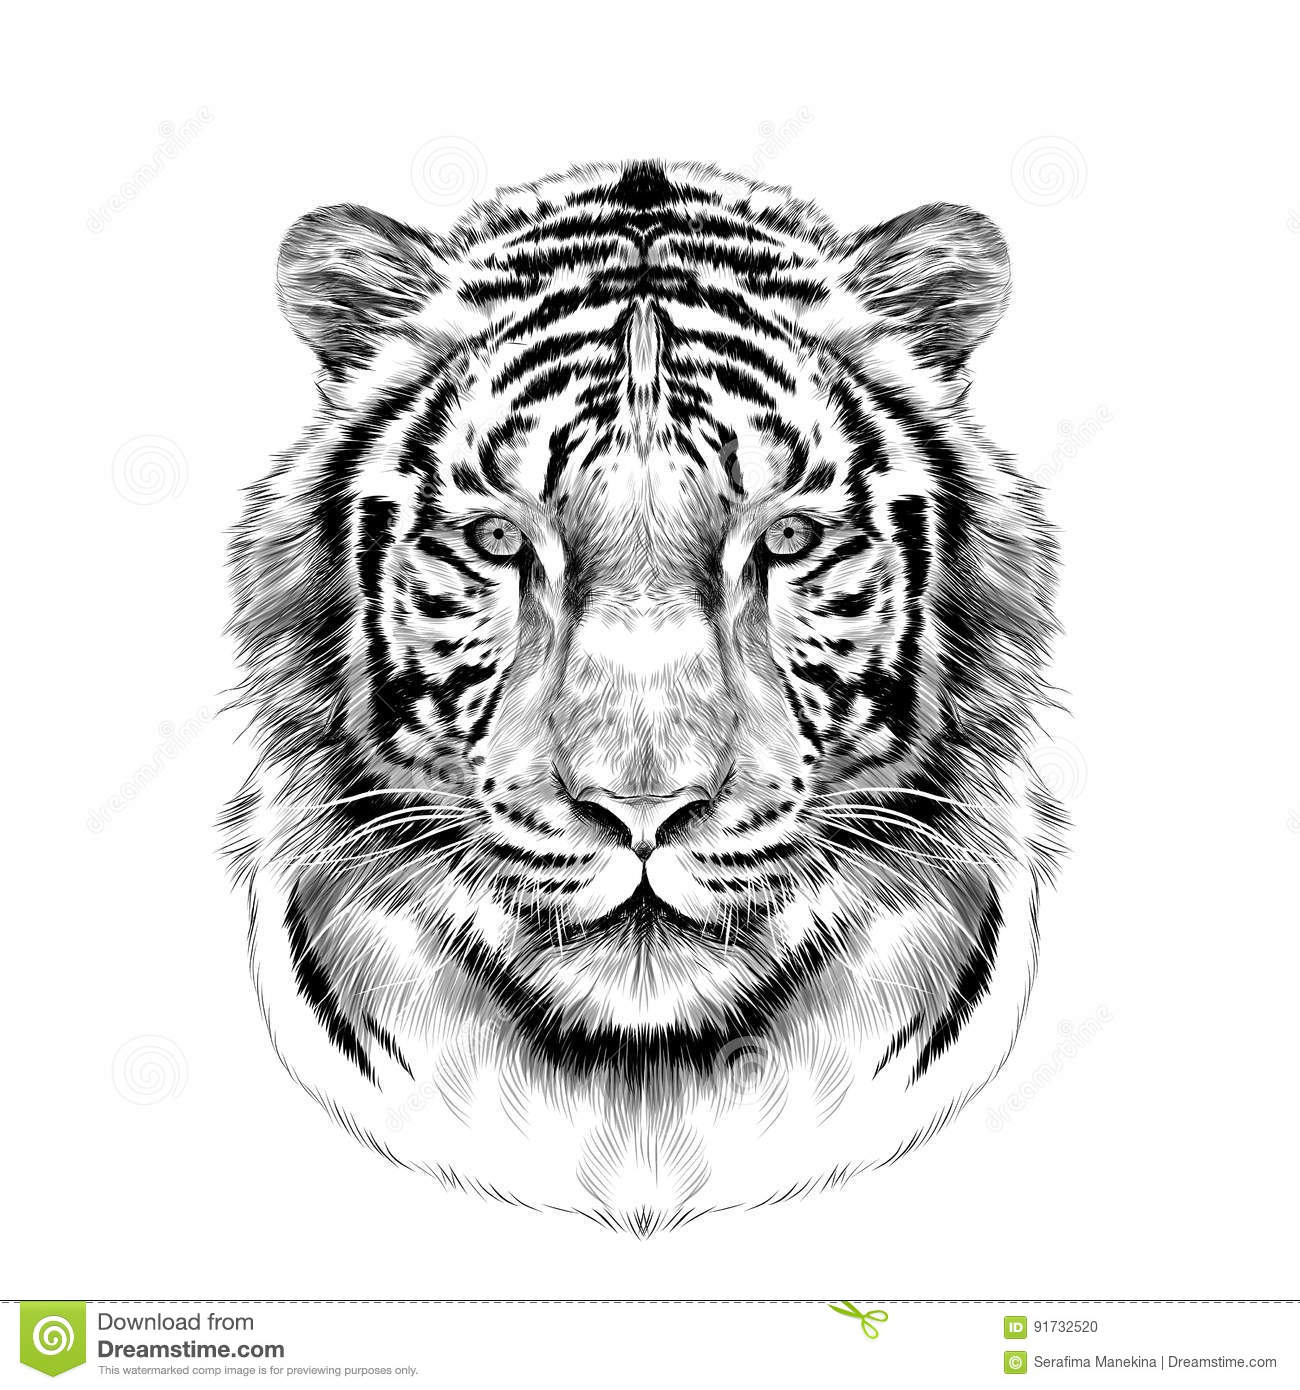 The Head Of The White Tiger Sketch Vector Graphics Stock ...